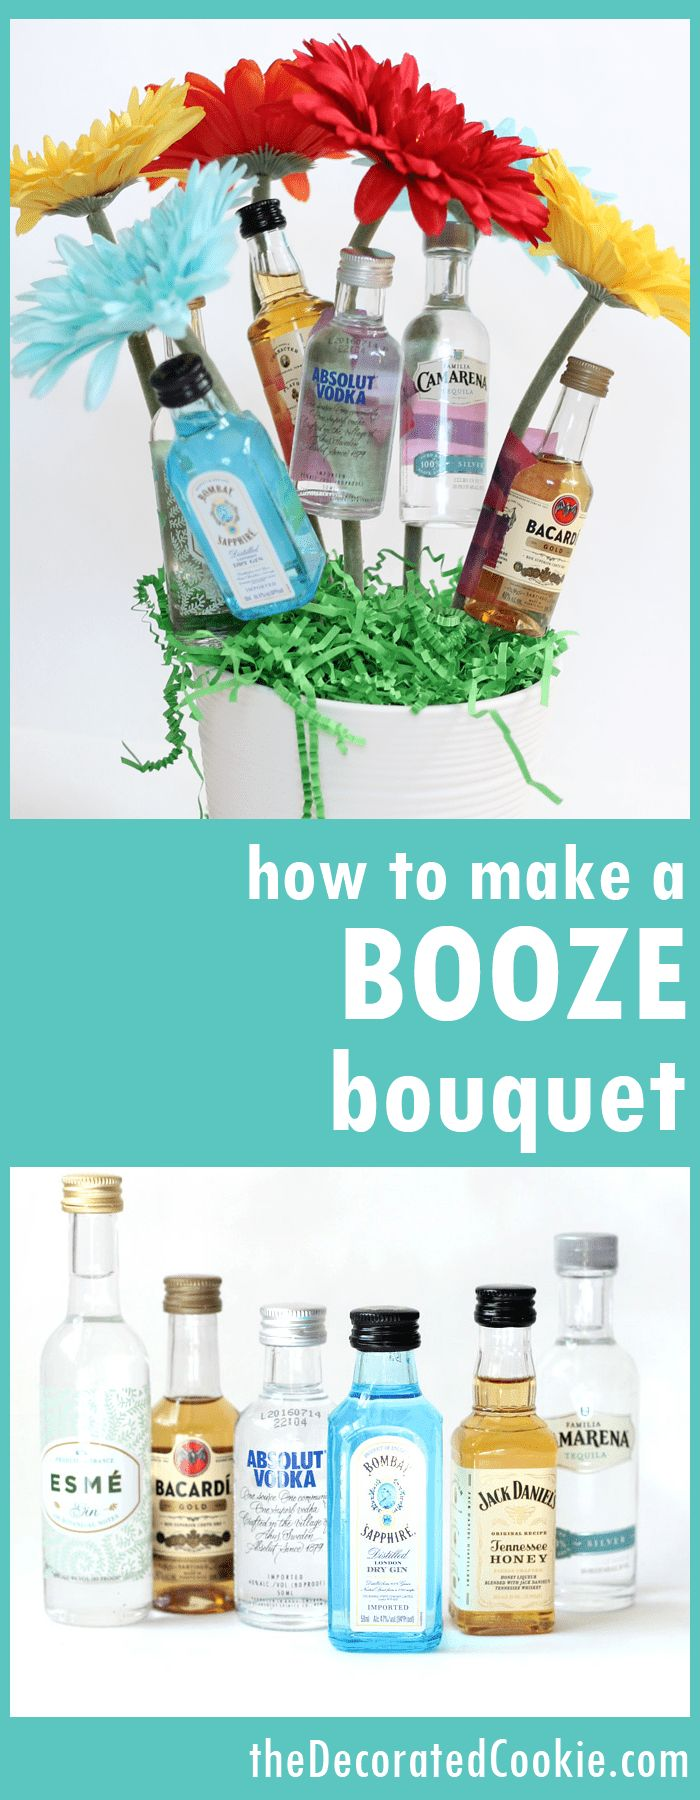 booze bouquet gift idea -- Mother's Day, birthday, housewarming, bridal shower, hostess gift and more! (video how-tos)